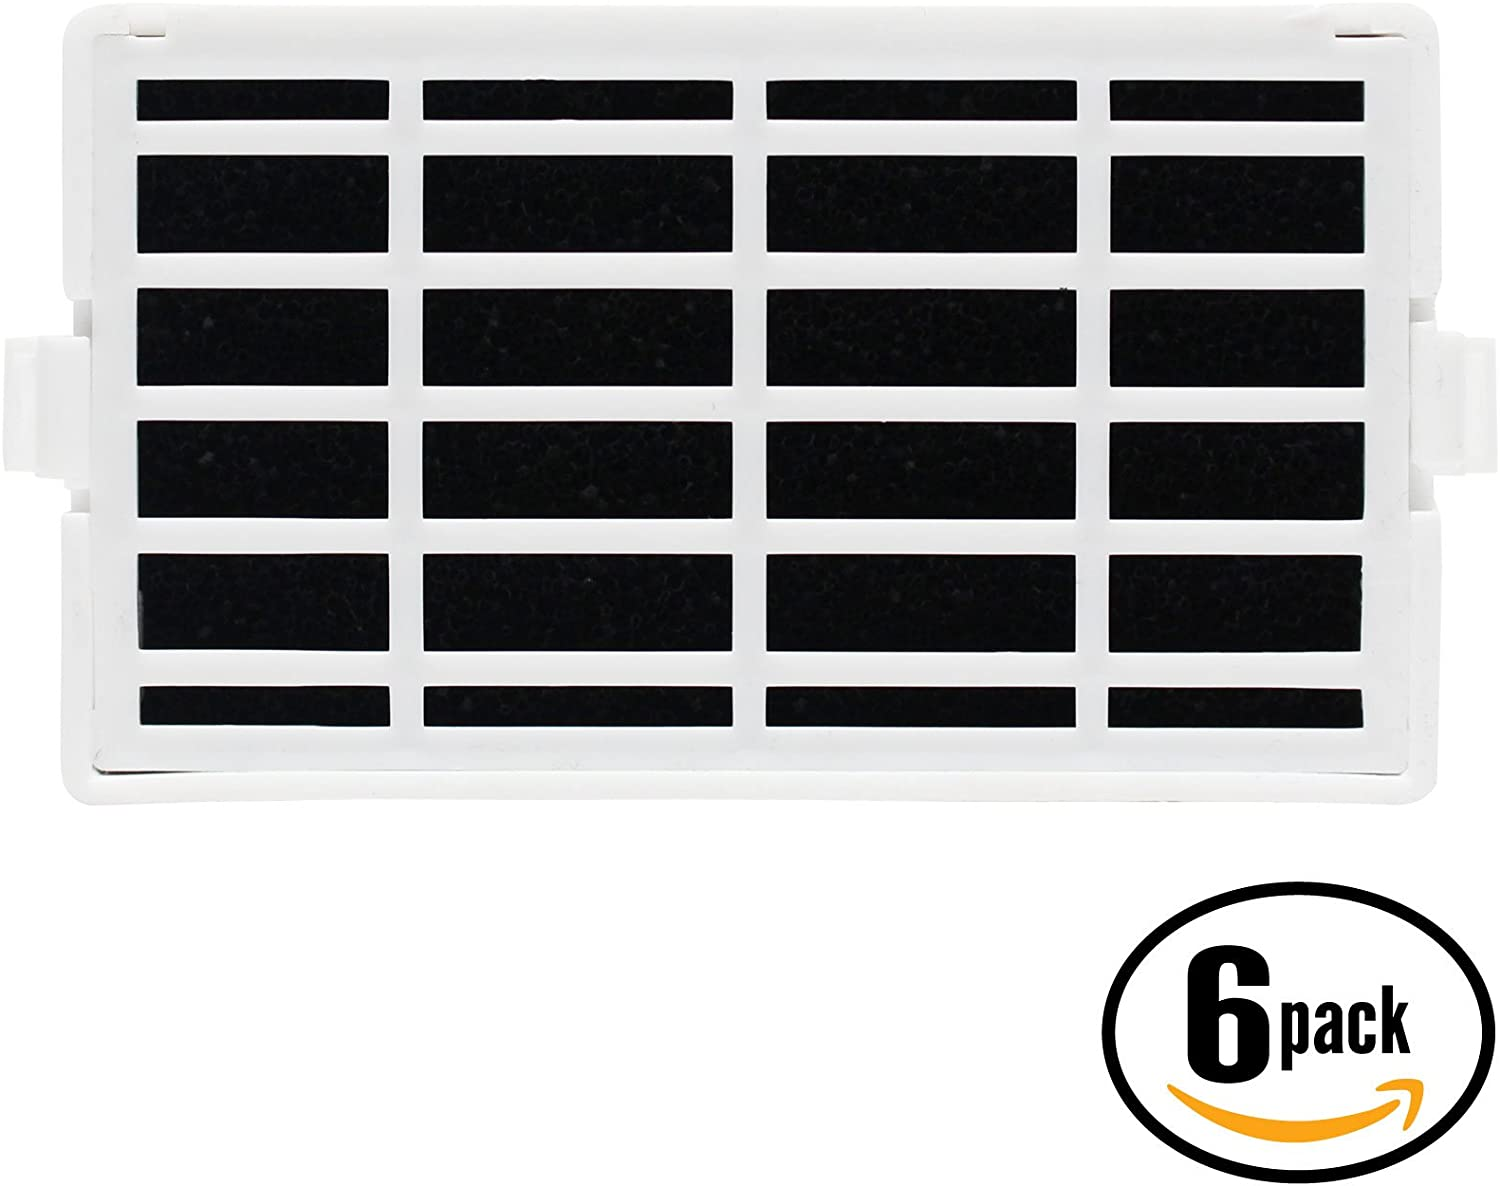 6-Pack Replacement for Whirlpool GSF26C4EXB00 Refrigerator Air Filter - Compatible with Whirlpool W10311524 AIR1 Fridge Air Filter